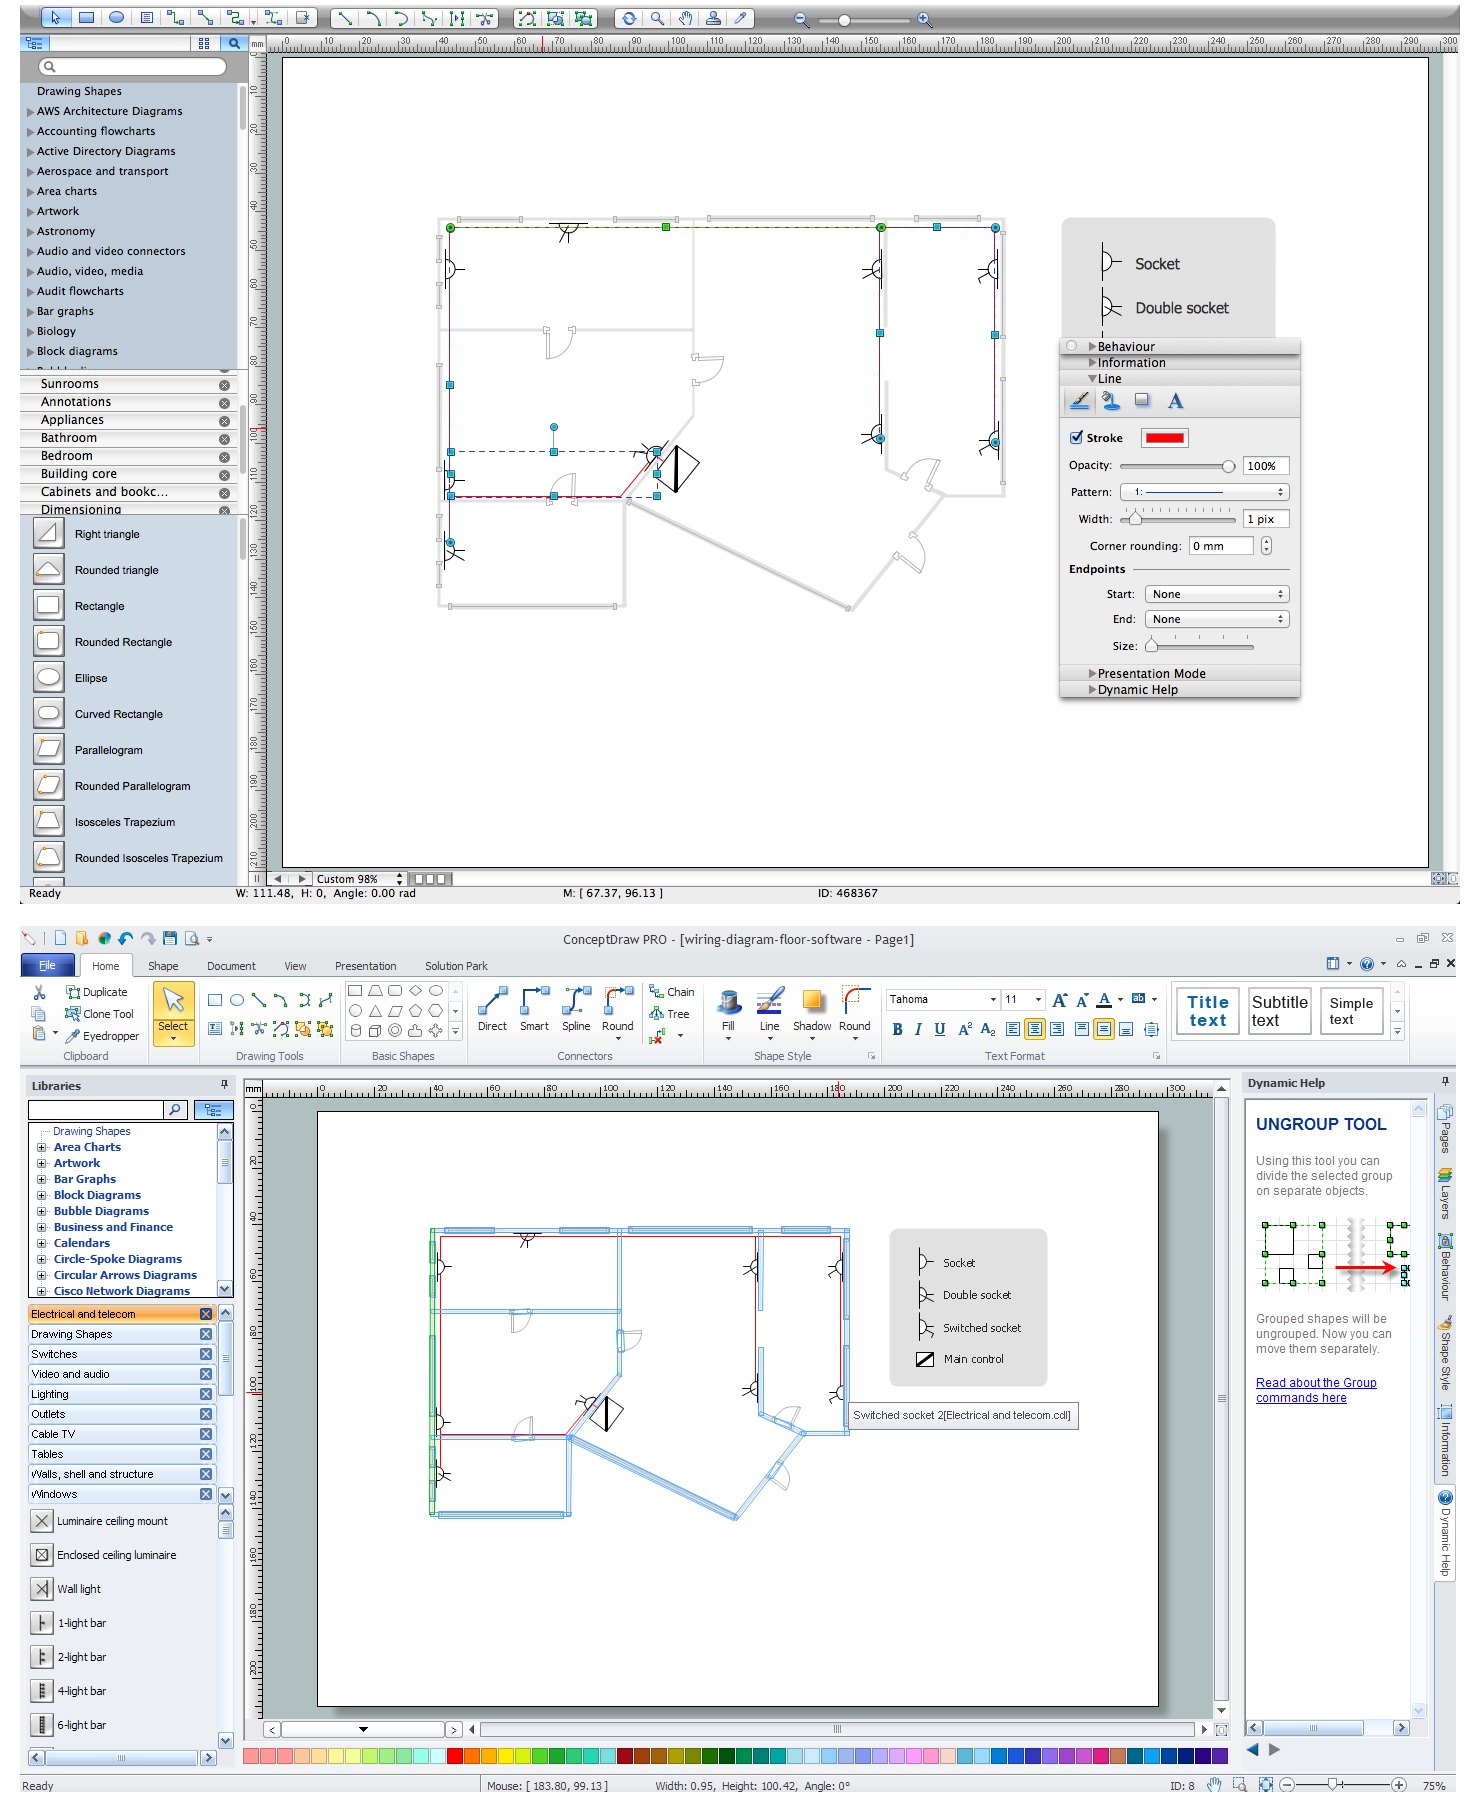 Wiring diagram with conceptdraw pro wiring diagram floor software asfbconference2016 Images